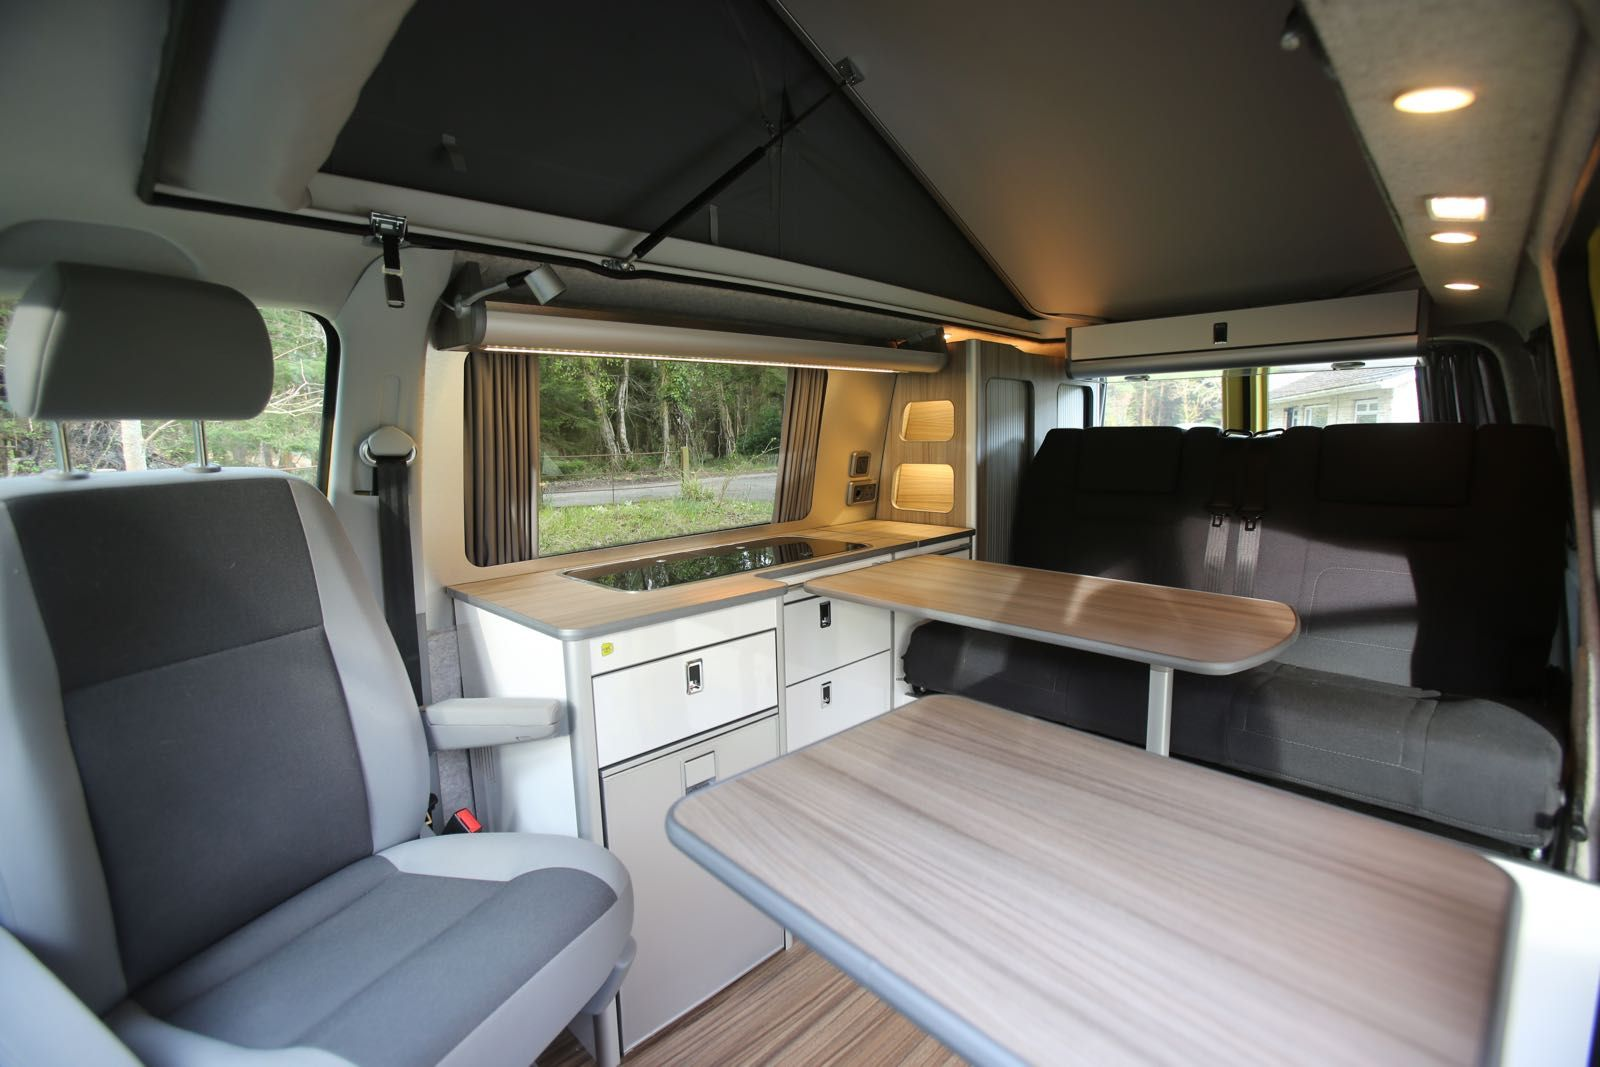 Conversion Gallery  VW T6 Campers  Kitchen Pods  Flat Pack